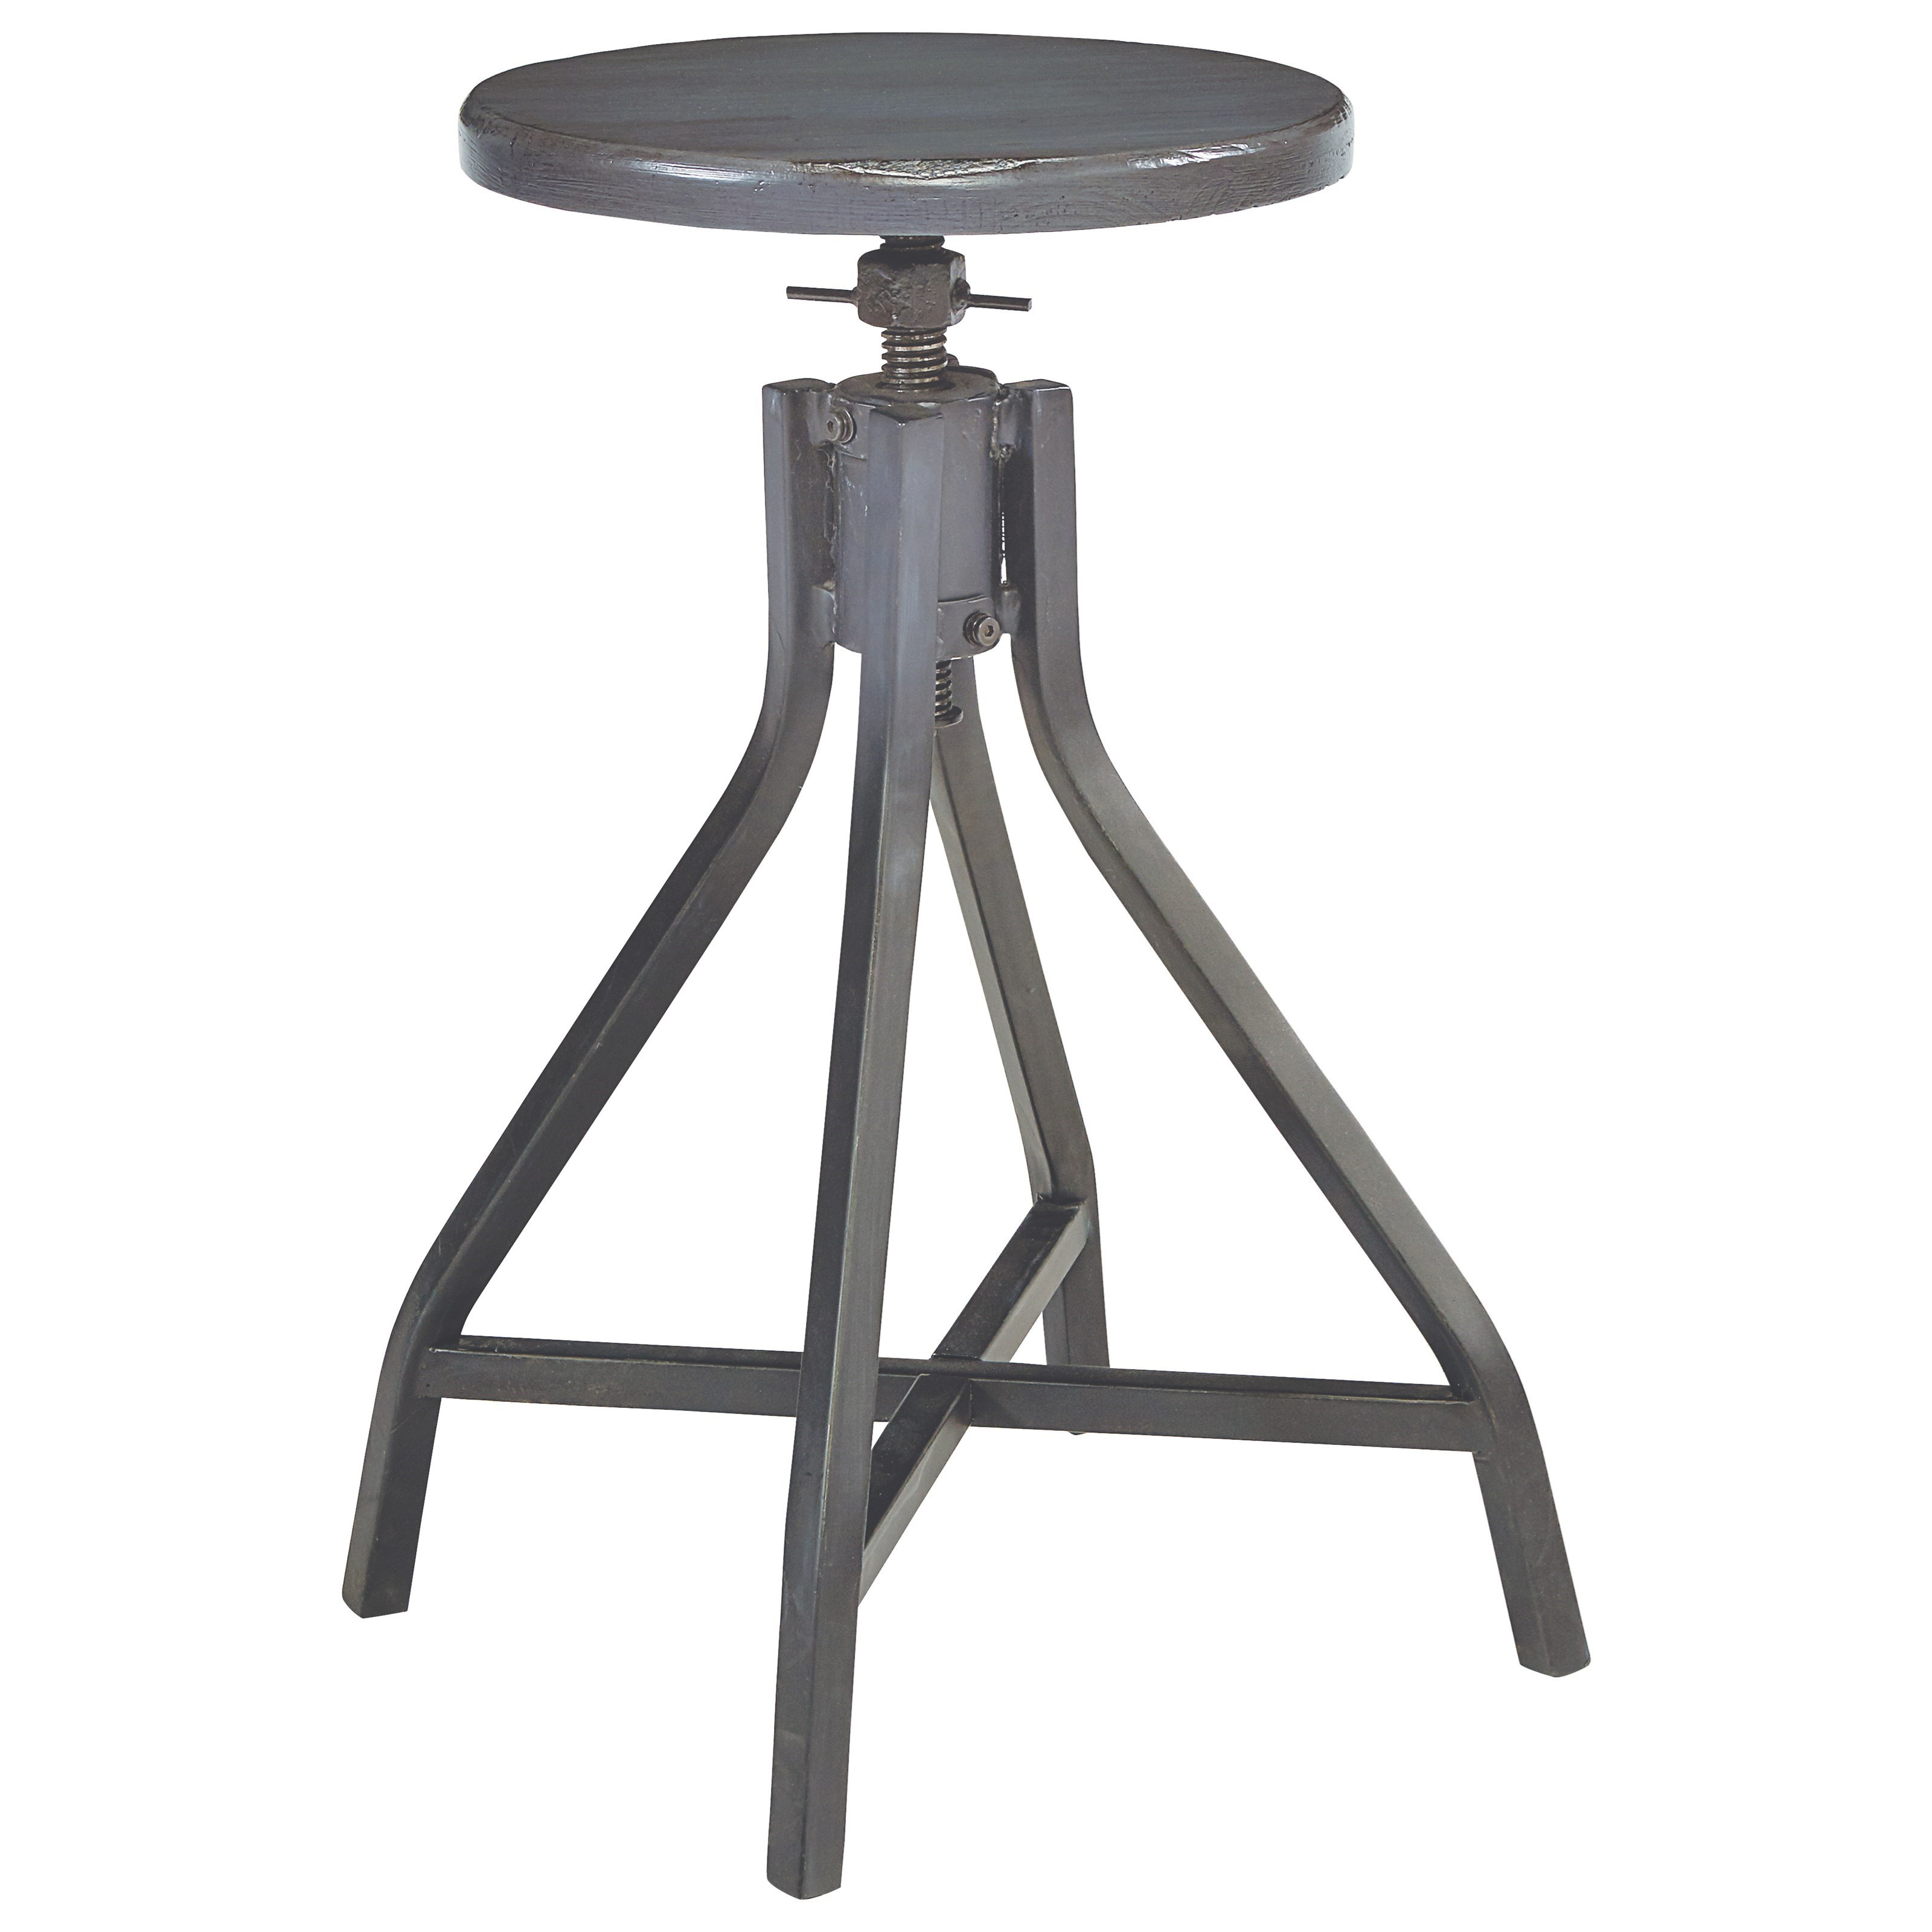 Magnolia Home by Joanna Gaines Accent Elements Industrial Stool - Item Number: 8030104E